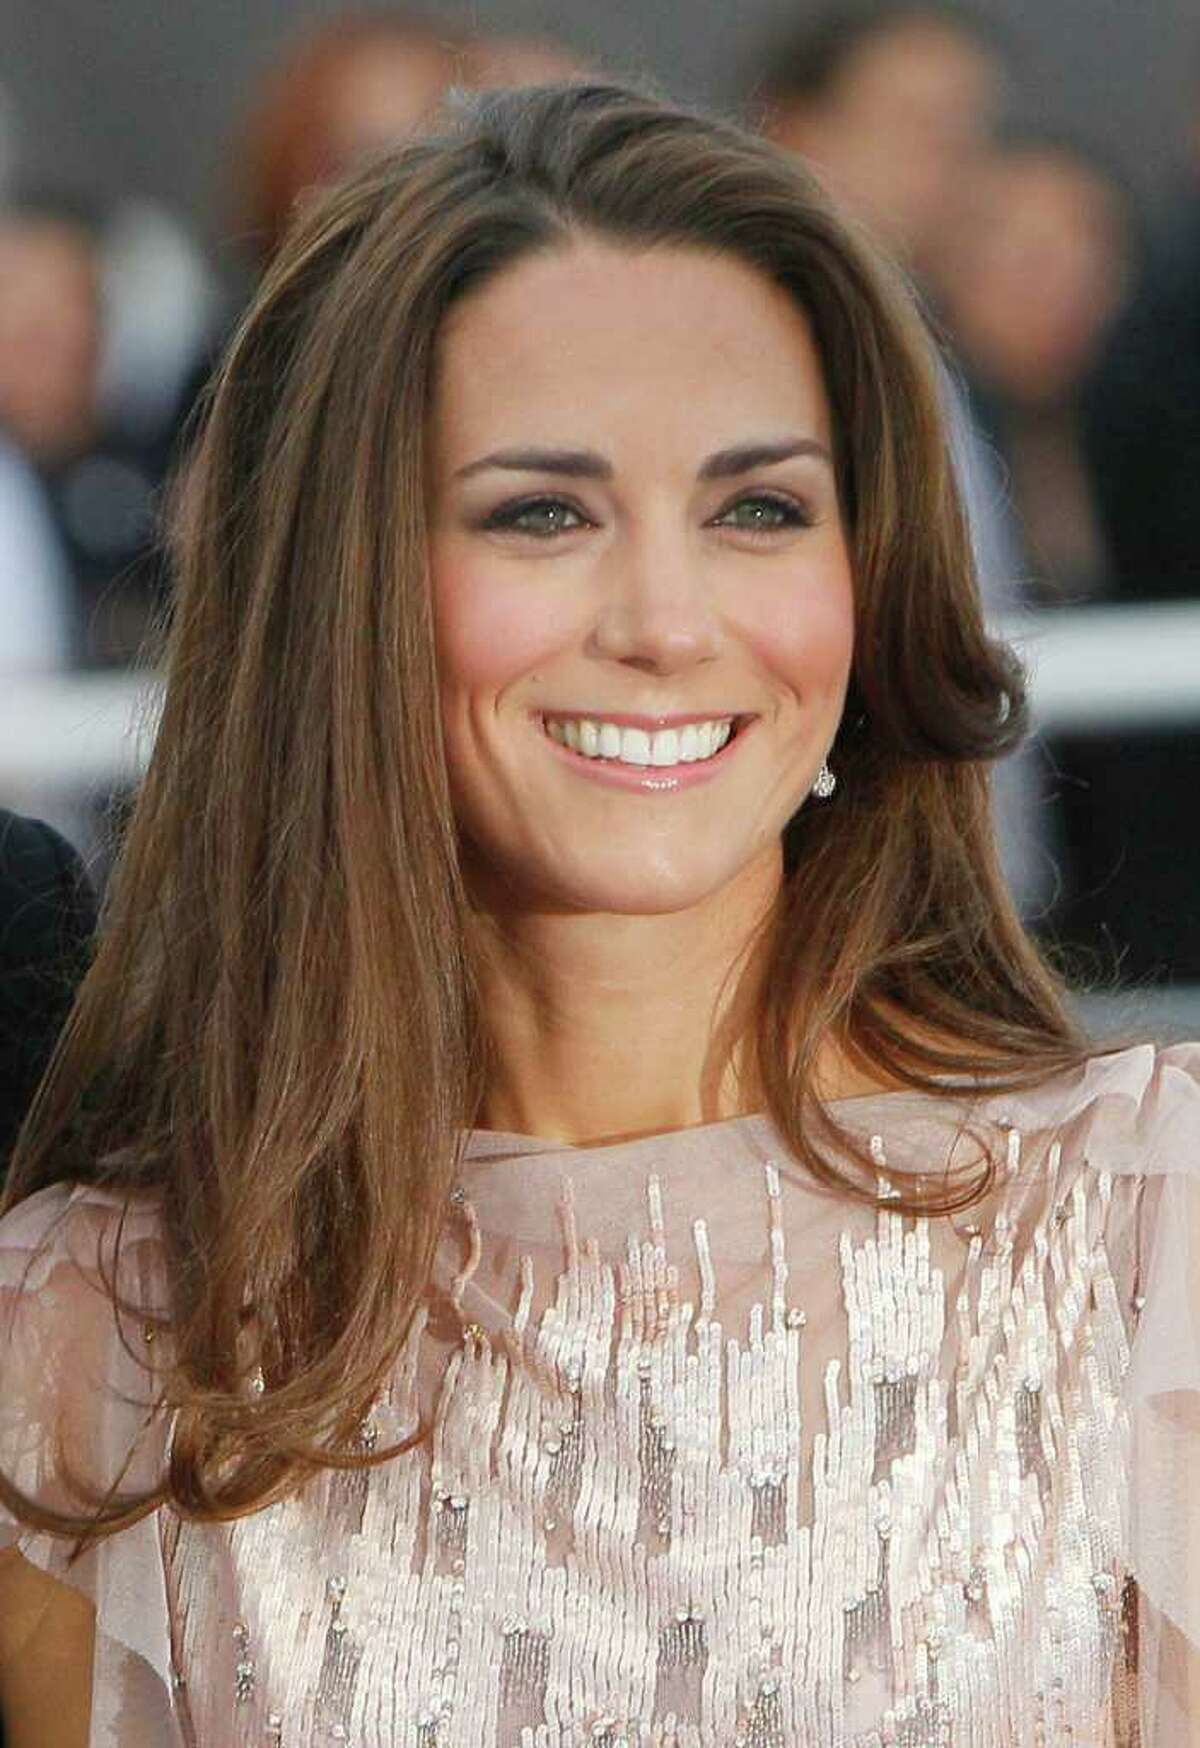 Kate, Duchess of Cambridge, wife of Prince William, arrives at a charity event for Absolute Return for Kids, ARK, in central London, Thursday, June, 9, 2011. The charity event is the first official engagement for the couple since they were married on April 29.